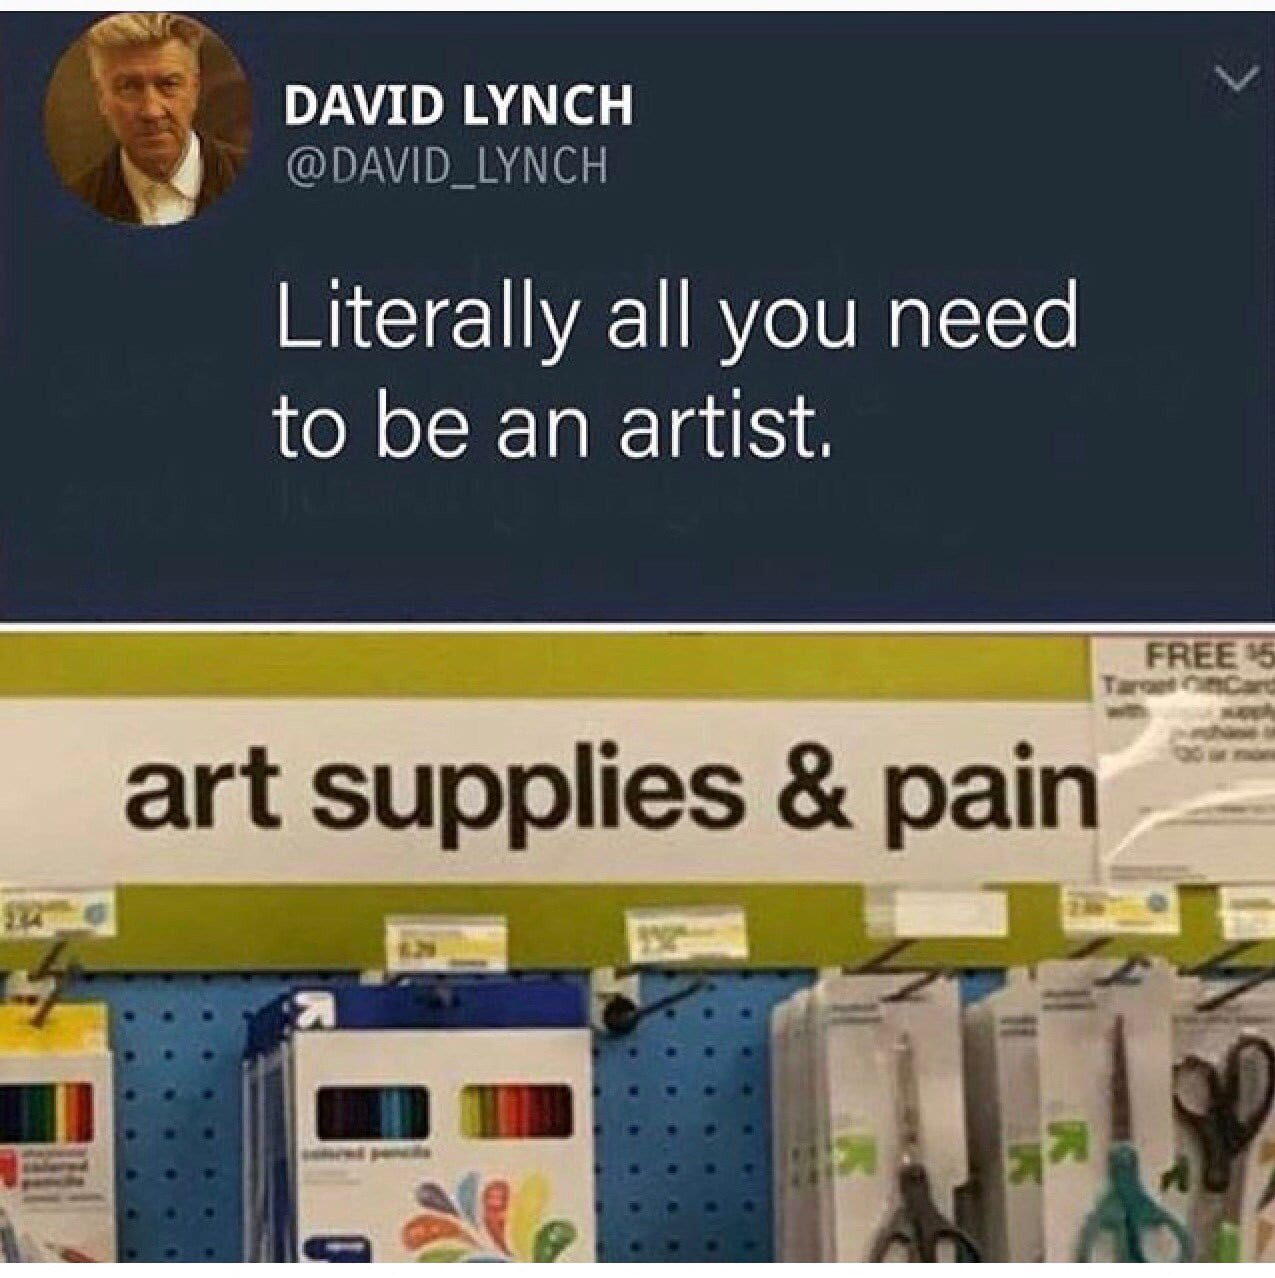 David Lynch twitter meme about art and pain